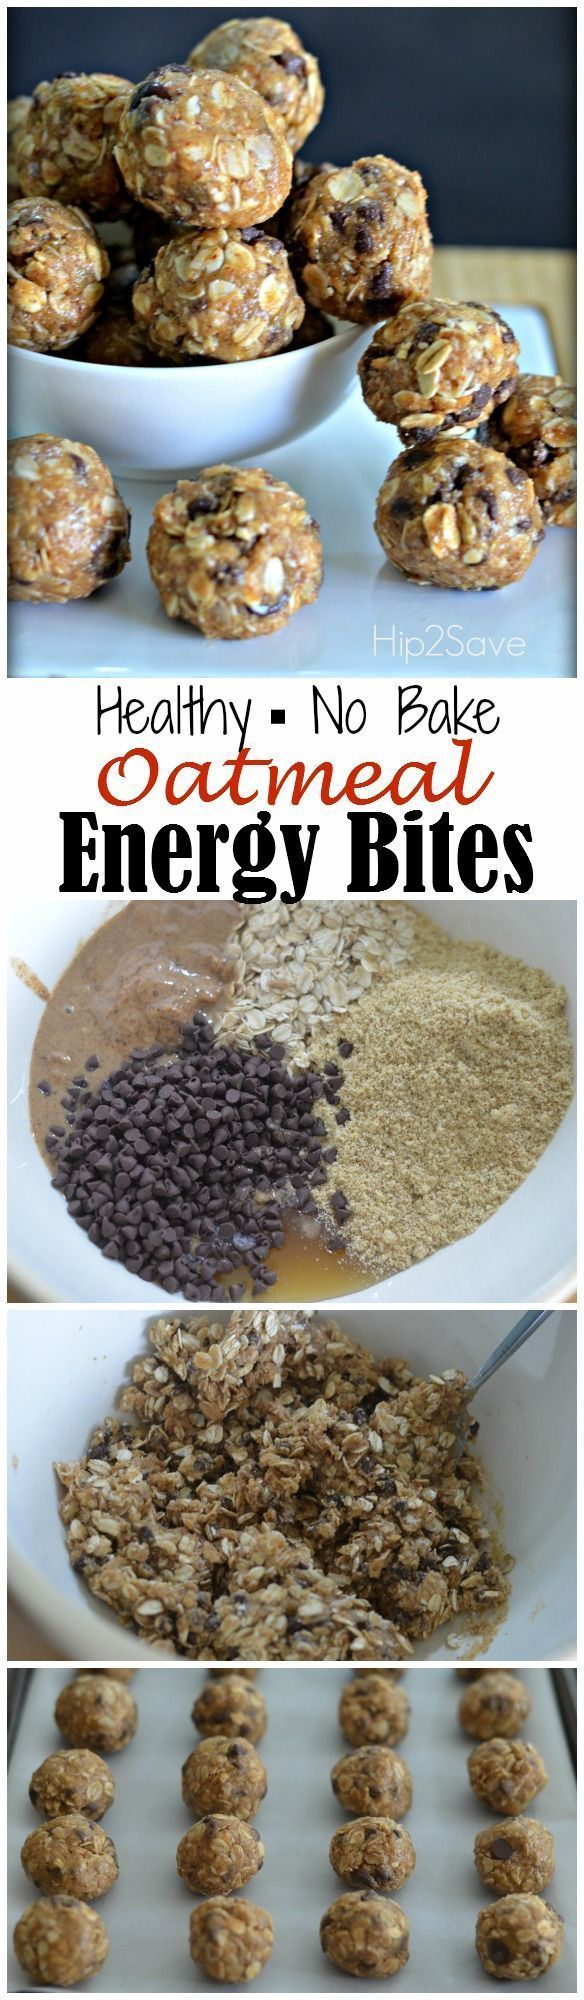 Oatmeal Energy Bites Healthy Kids Snacks For SchoolHealthy Camping SnacksCamping Ideas